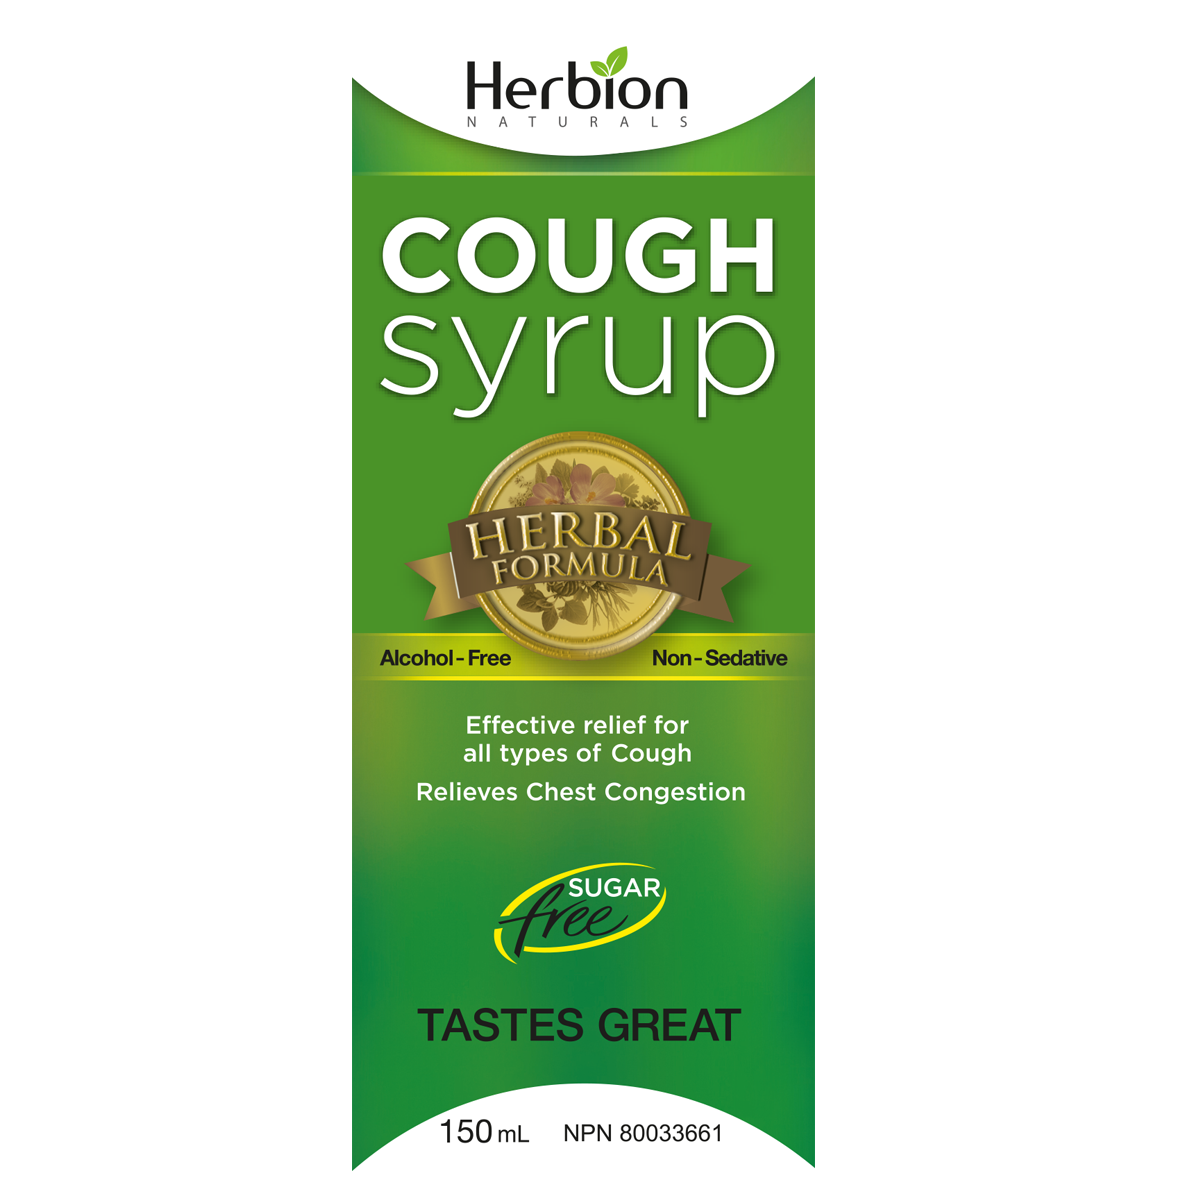 Herbion (plantain syrup): instructions for use